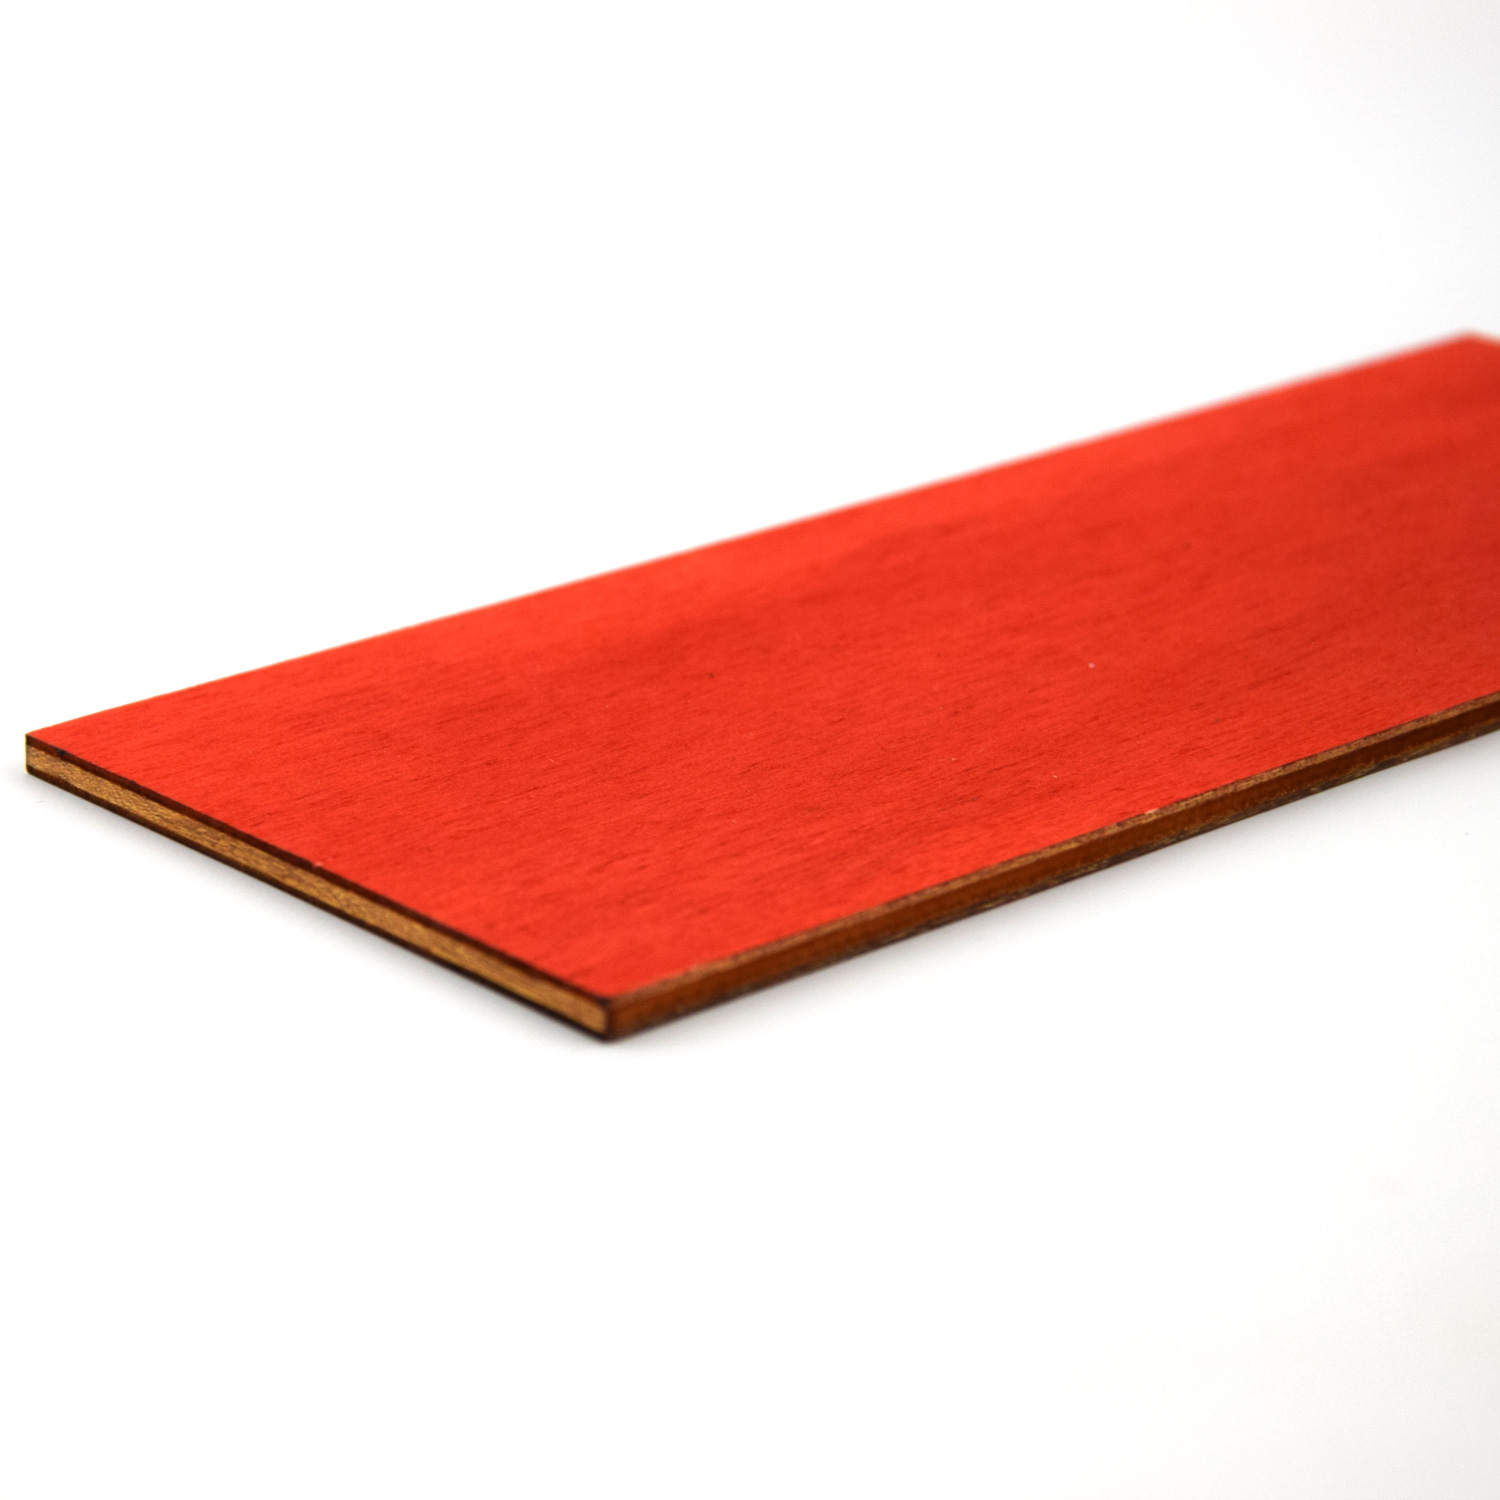 Laser cut edges of red painted poplar plywood